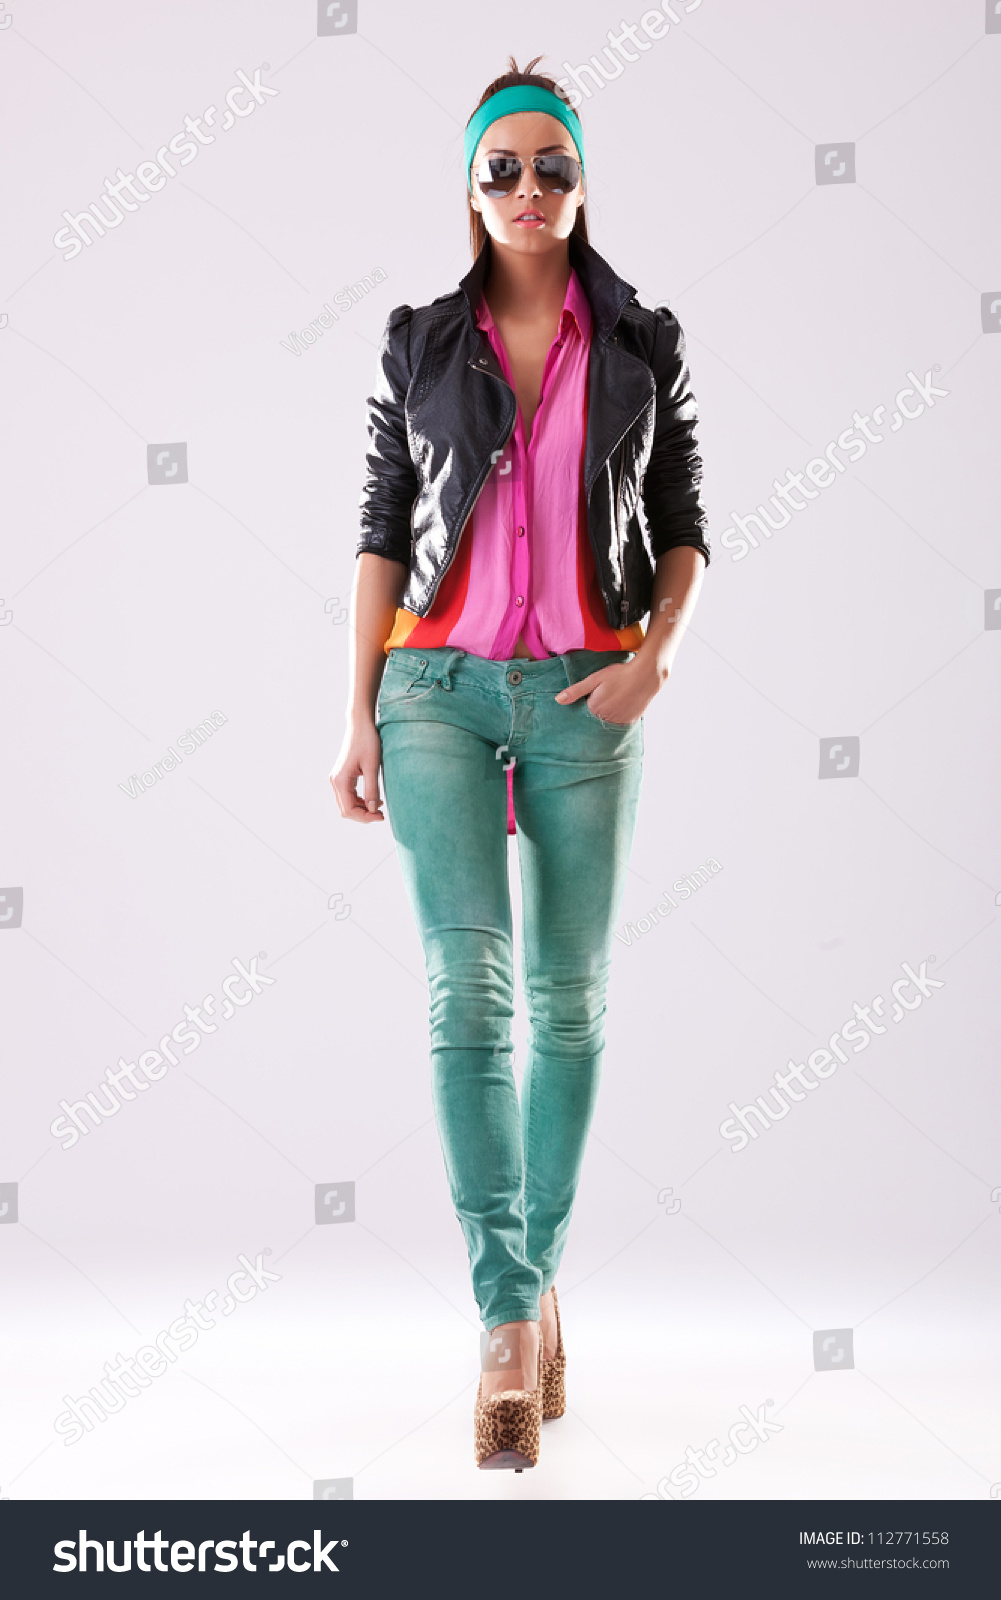 Young Woman High Heels Casual Clothes Stock Photo ...